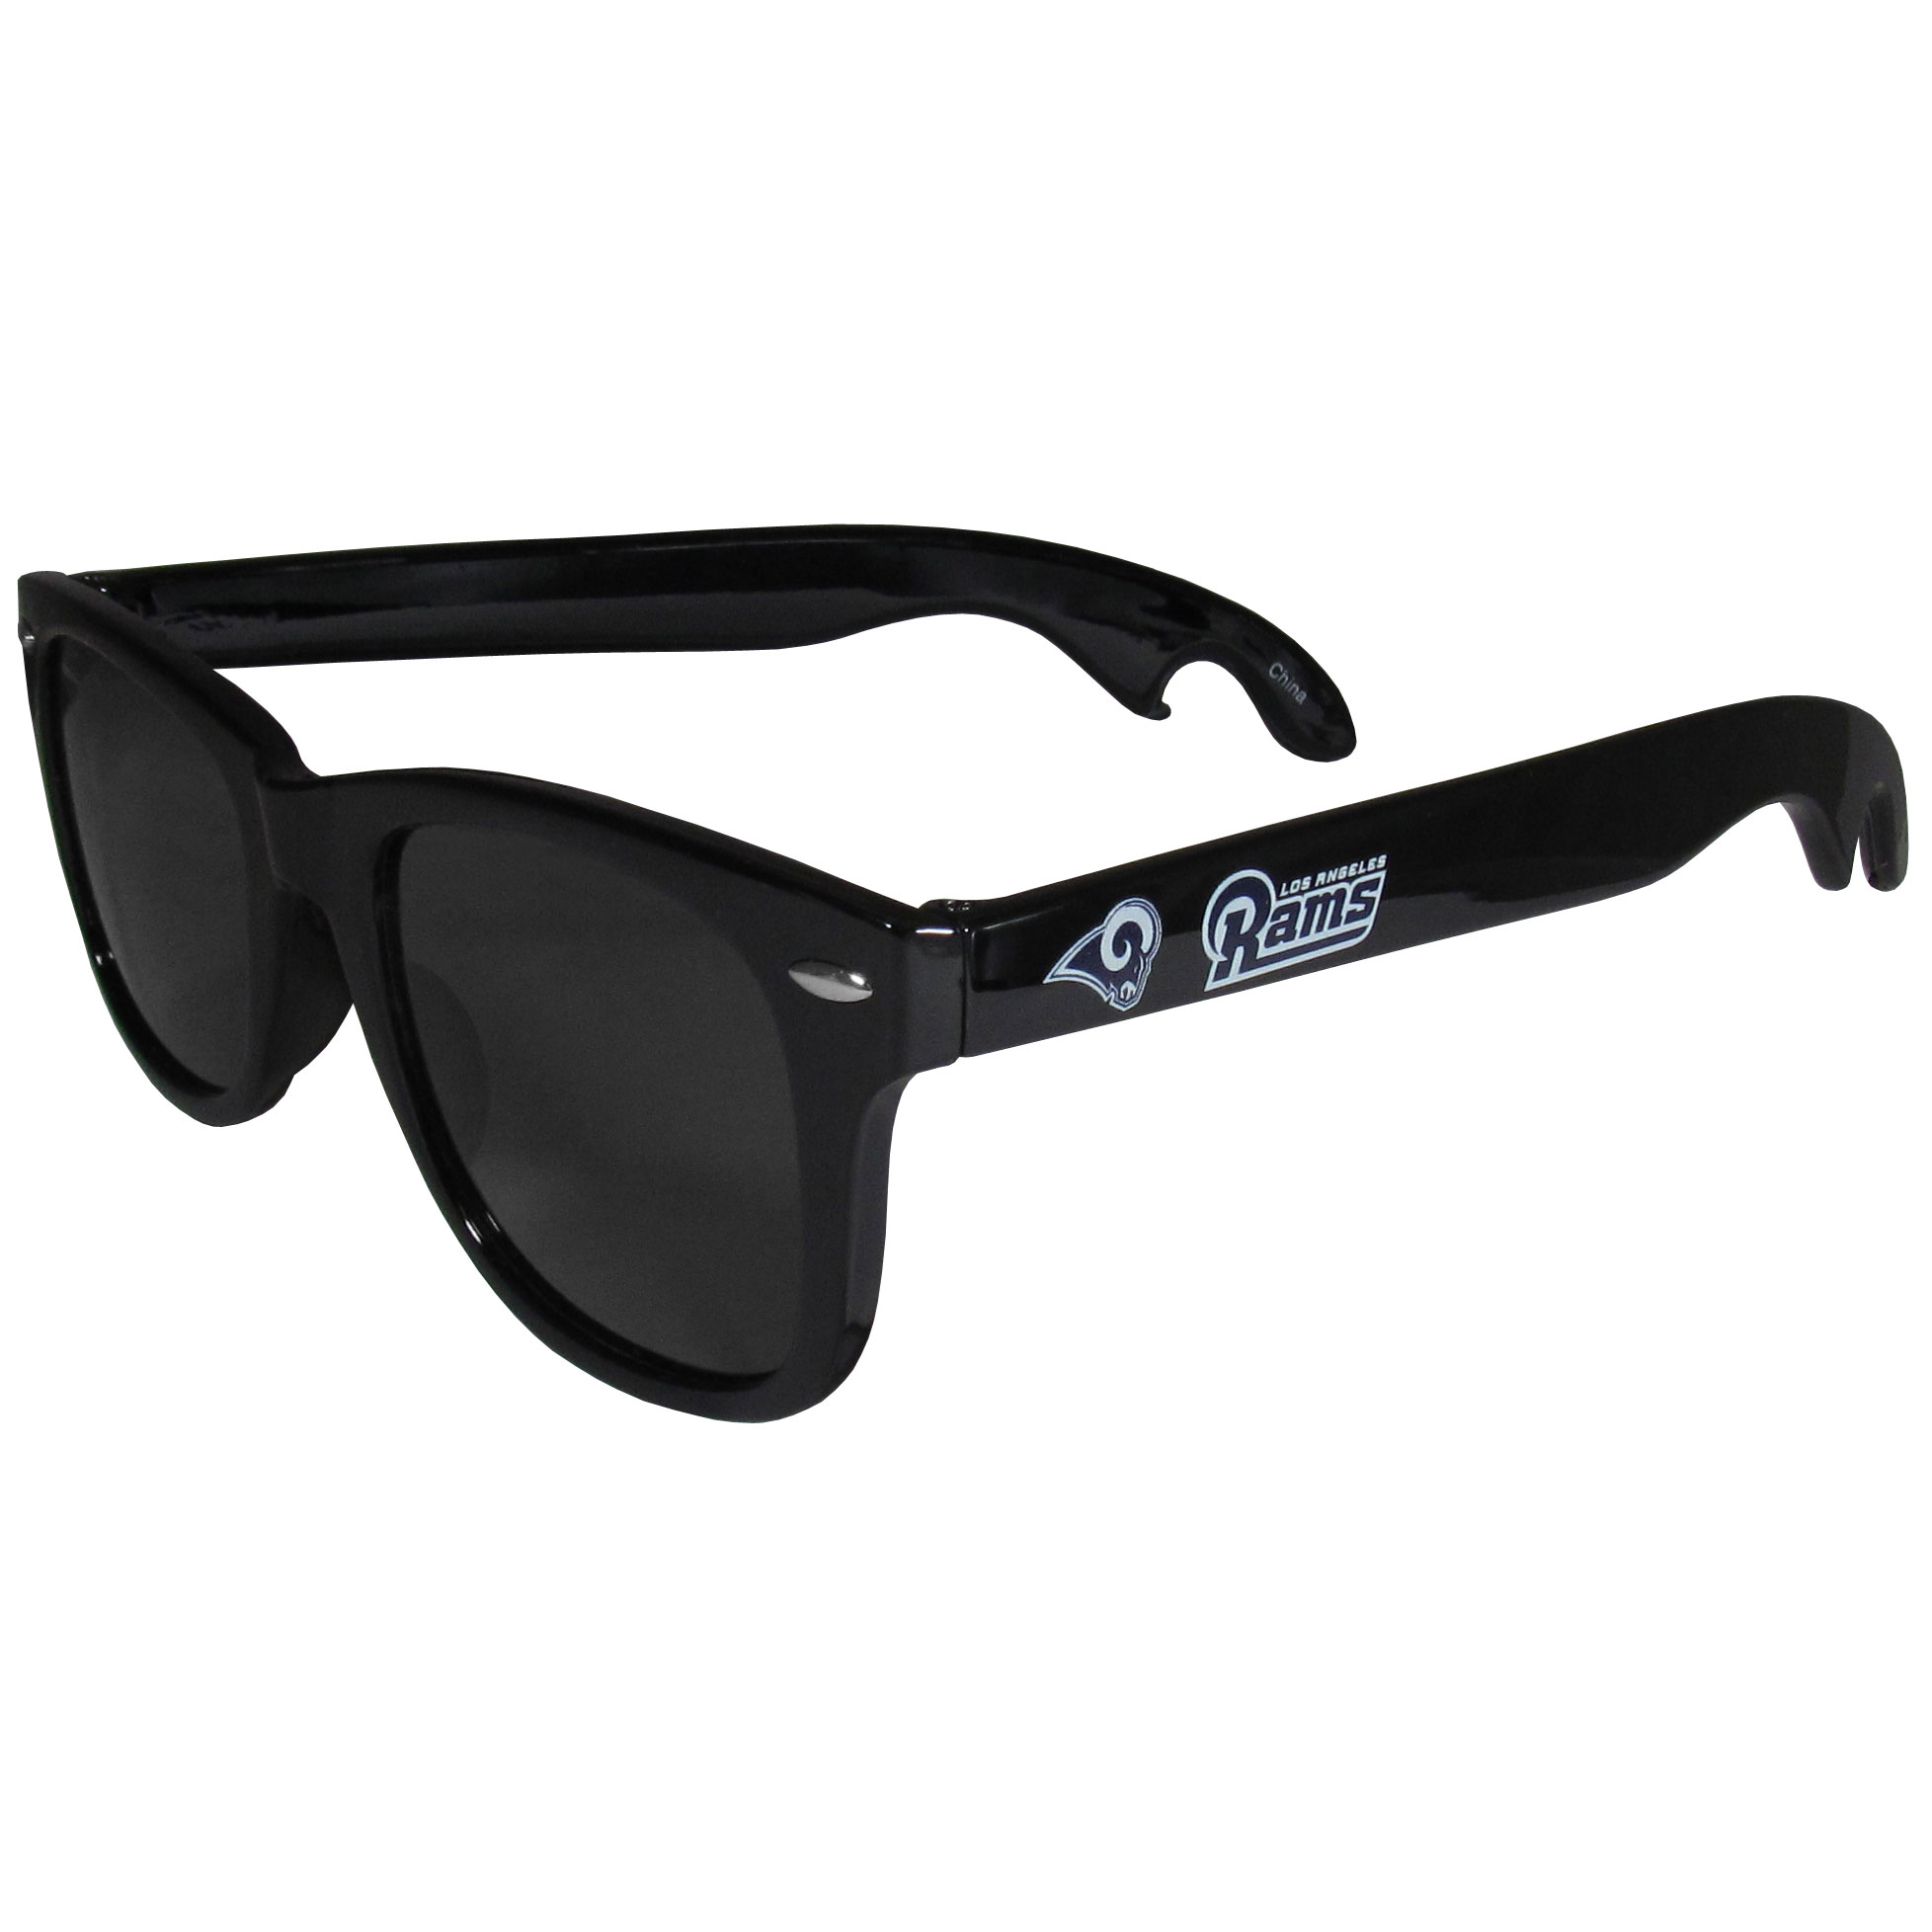 Los Angeles Rams Beachfarer Bottle Opener Sunglasses - Seriously, these sunglasses open bottles! Keep the party going with these amazing Los Angeles Rams bottle opener sunglasses. The stylish retro frames feature team designs on the arms and functional bottle openers on the end of the arms. Whether you are at the beach or having a backyard BBQ on game day, these shades will keep your eyes protected with 100% UVA/UVB protection and keep you hydrated with the handy bottle opener arms.